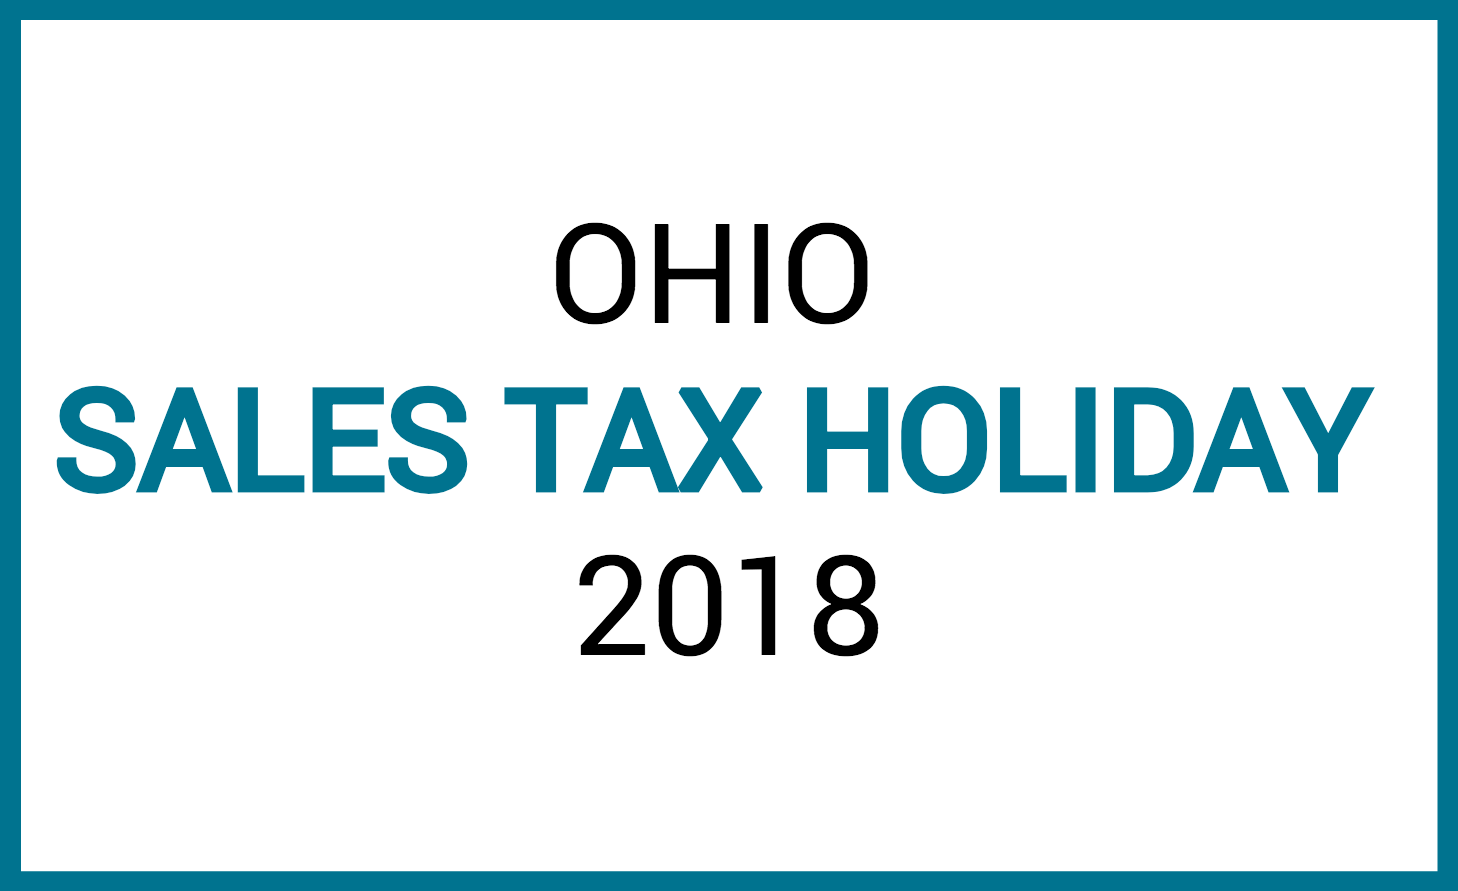 sales tax holiday 2018